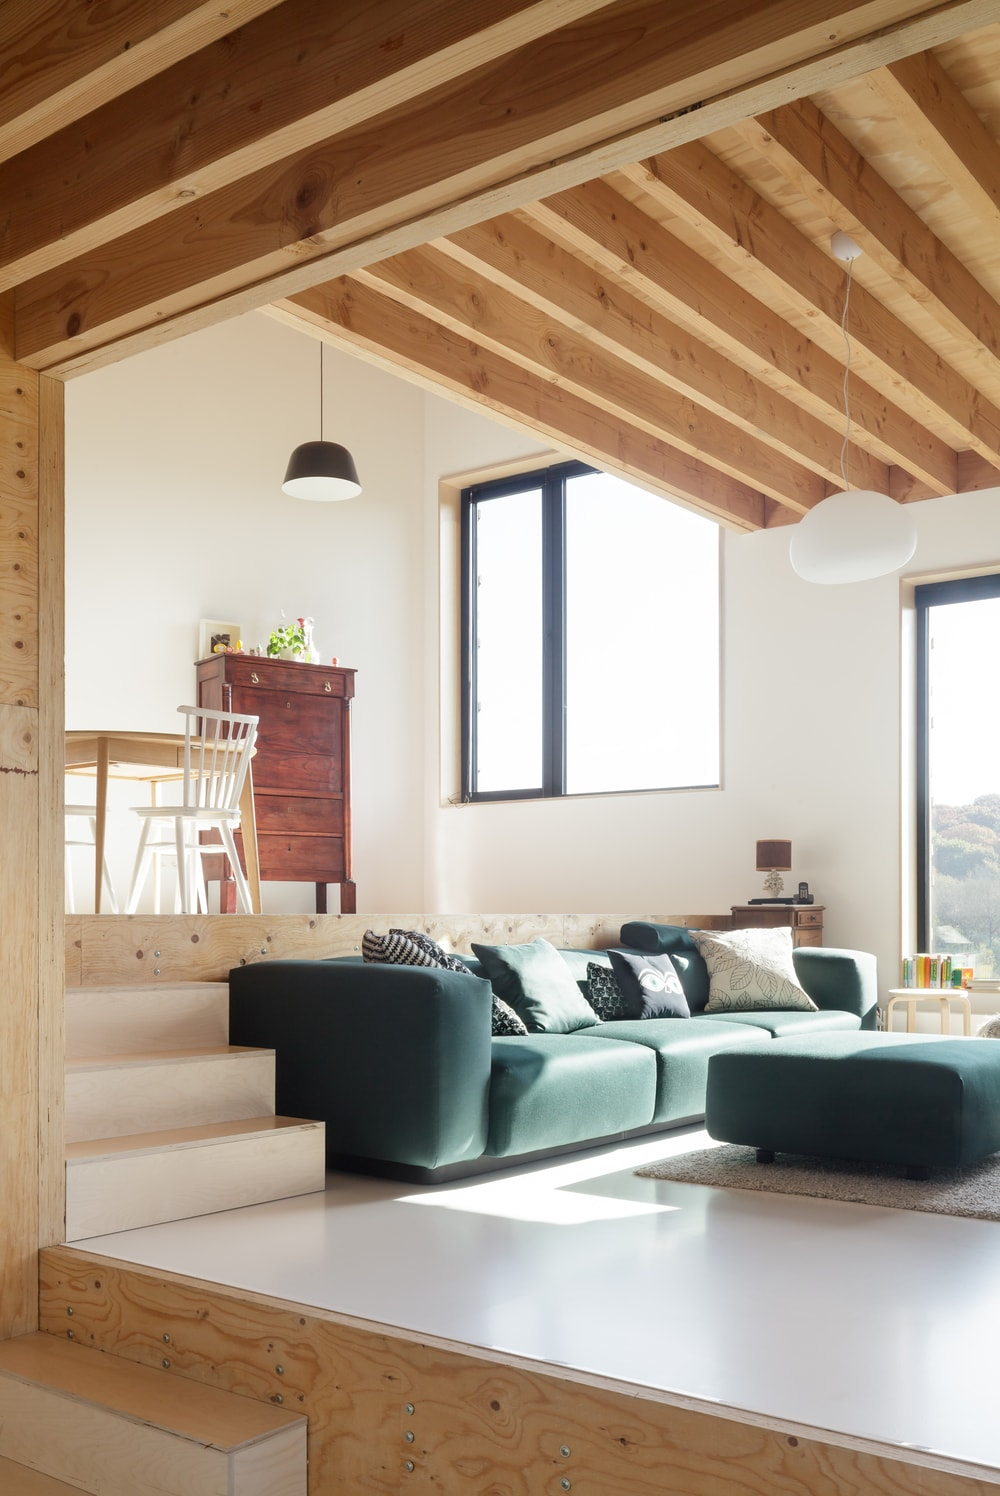 The large sectional sofa of the living room is topped with an arched and beamed wooden ceiling with a cottage-style aesthetic.